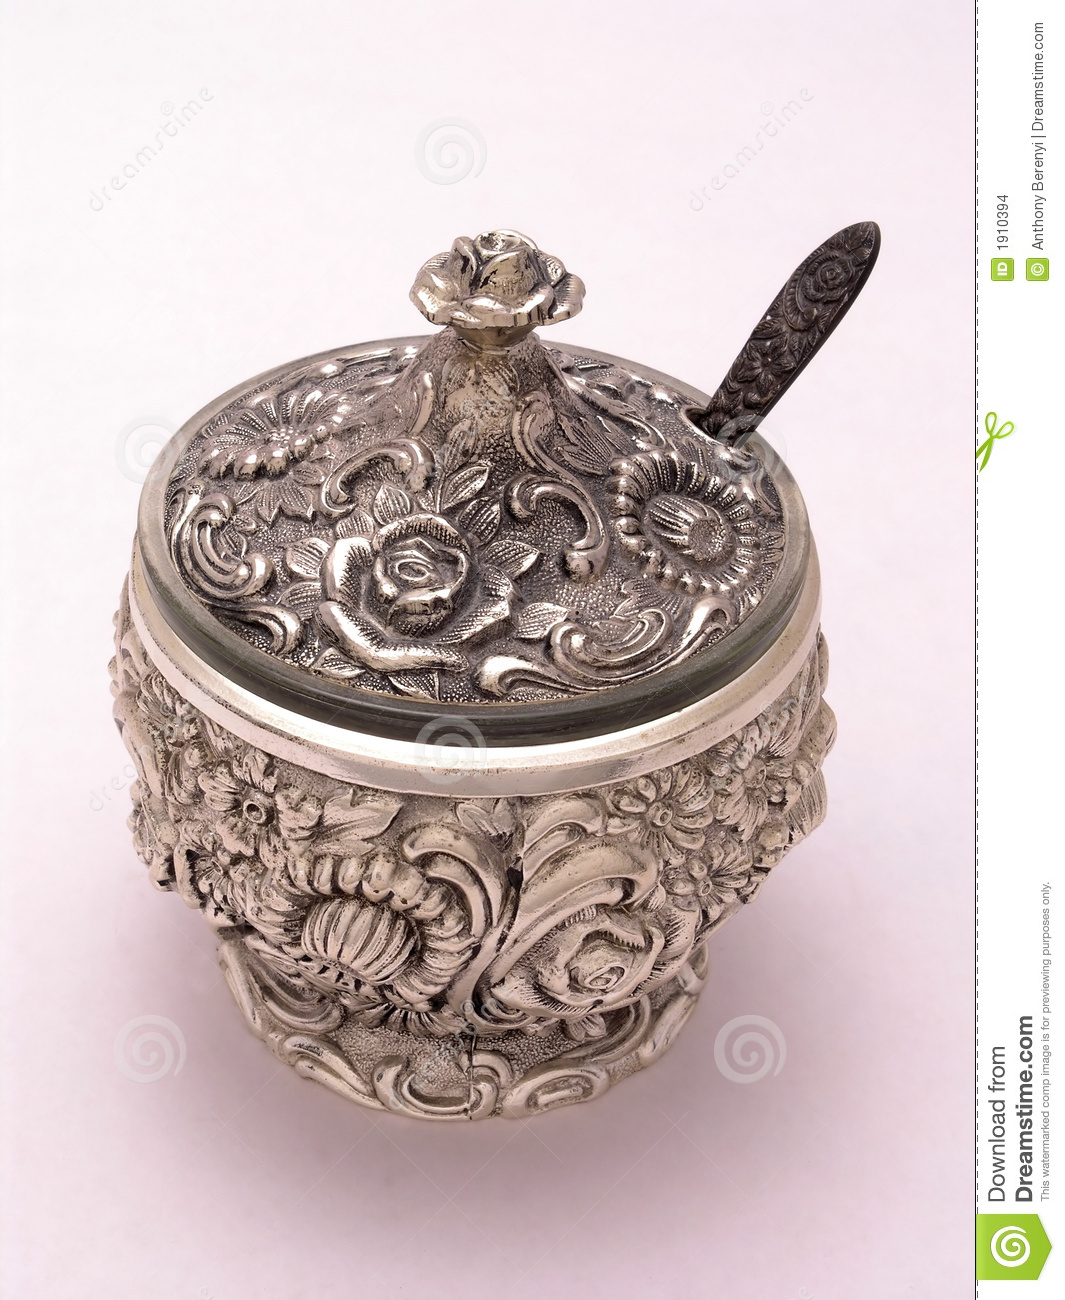 silver ornate sugar bowl 1 stock photo image of antique 1910394